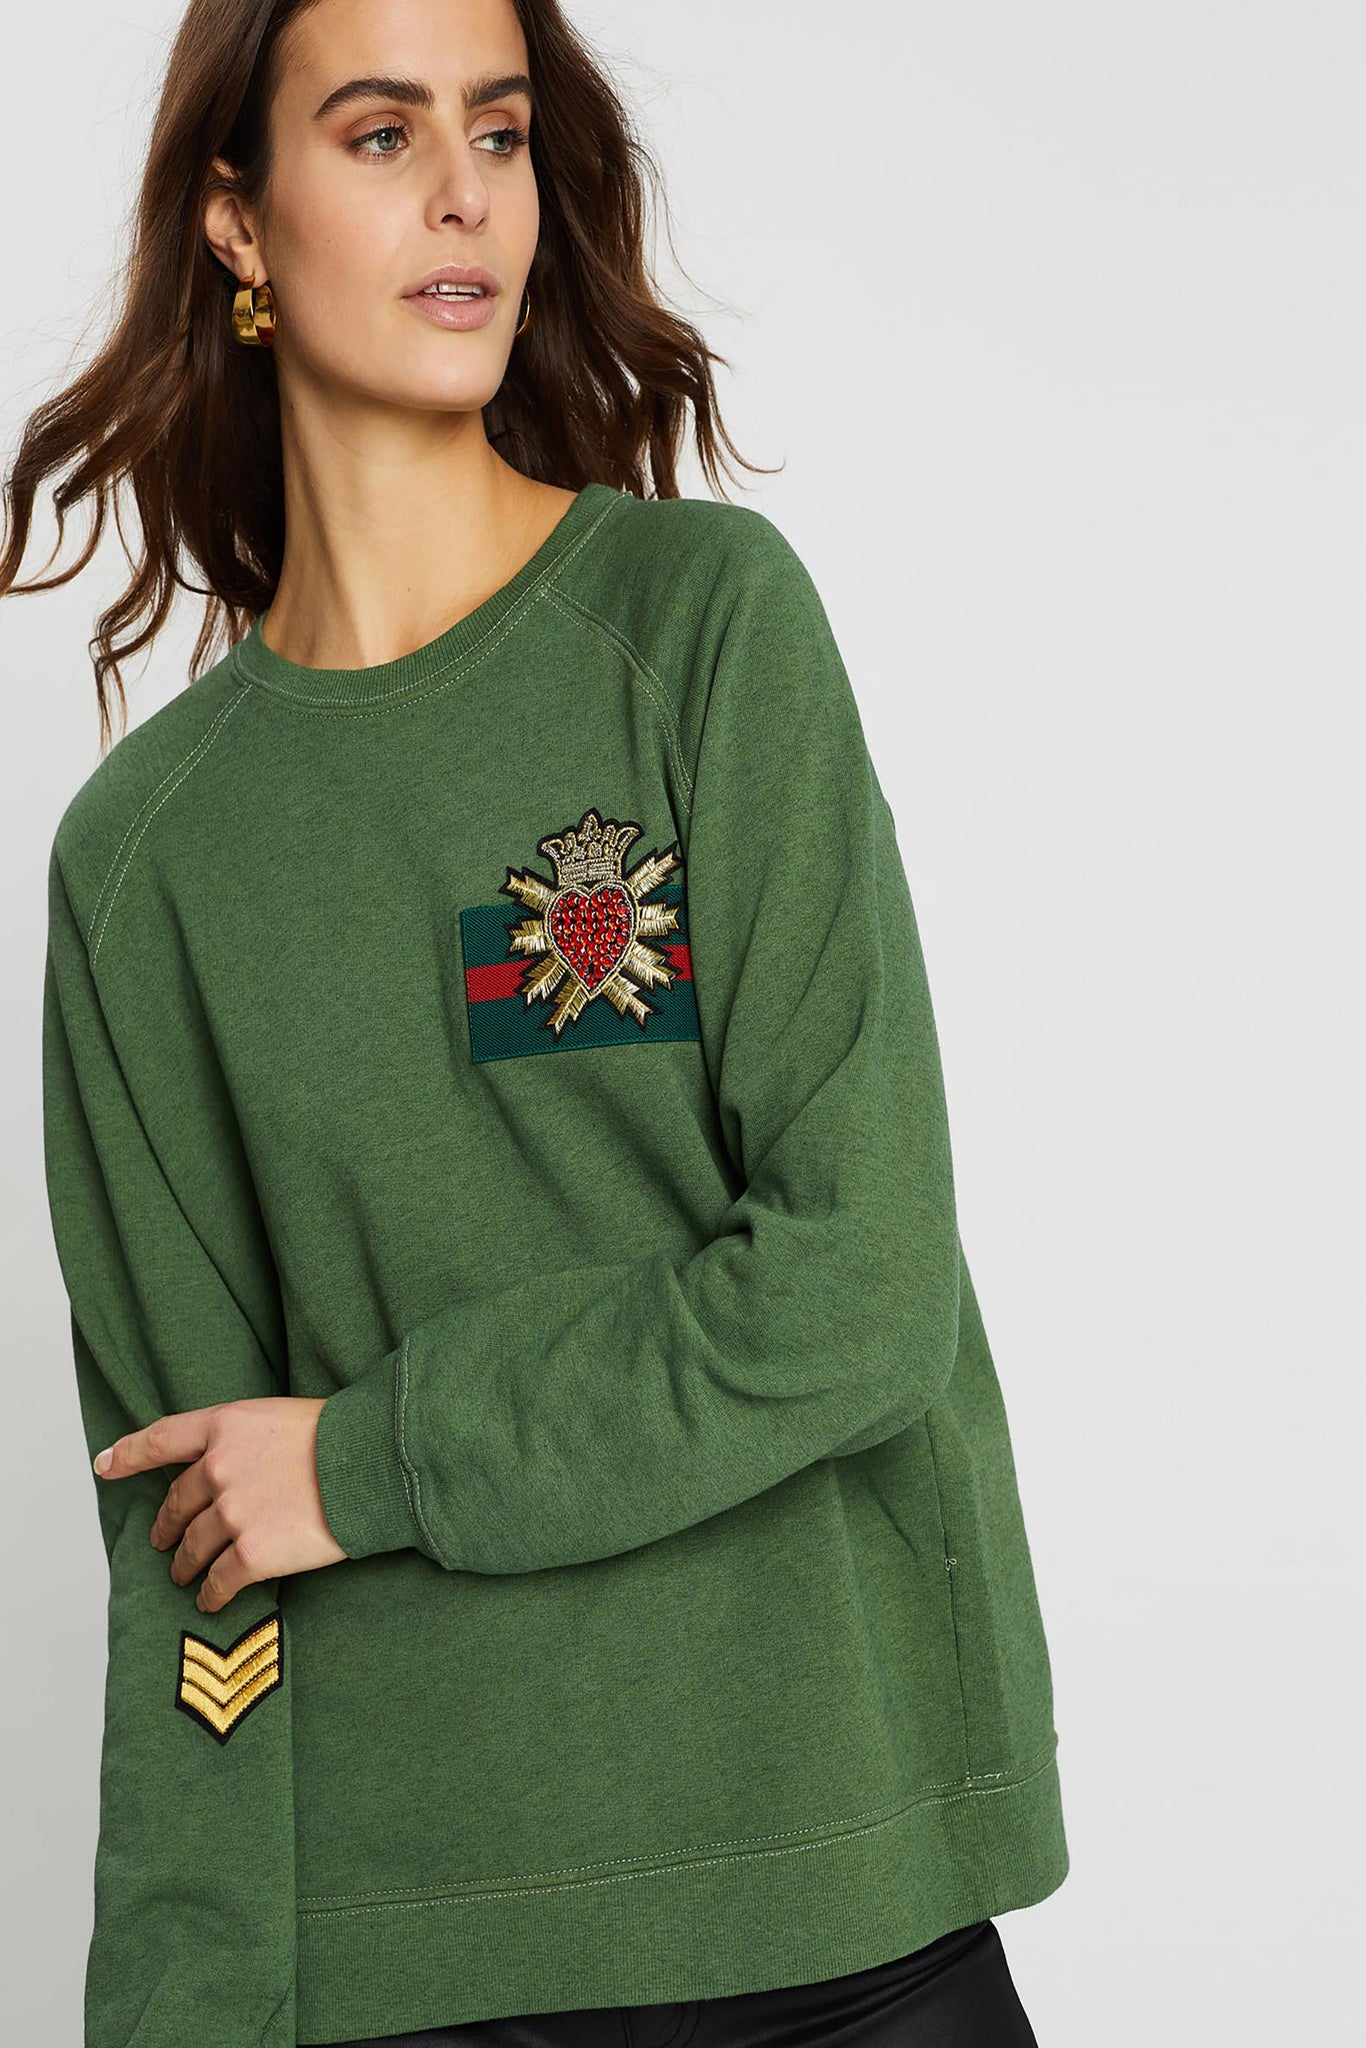 The Heart Sweater